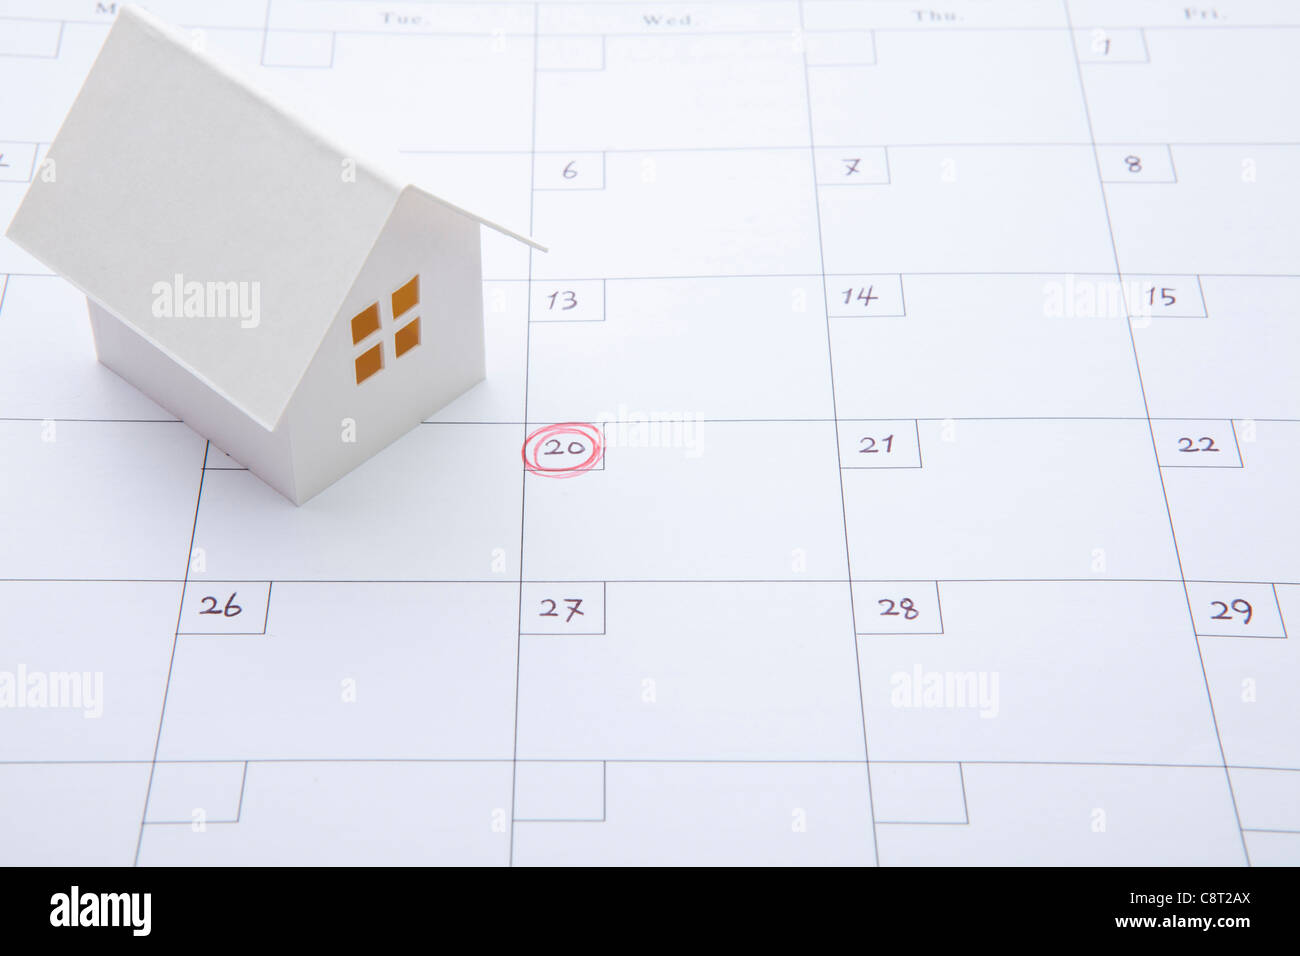 Model of house on calendar with marking on 20th of the month - Stock Image